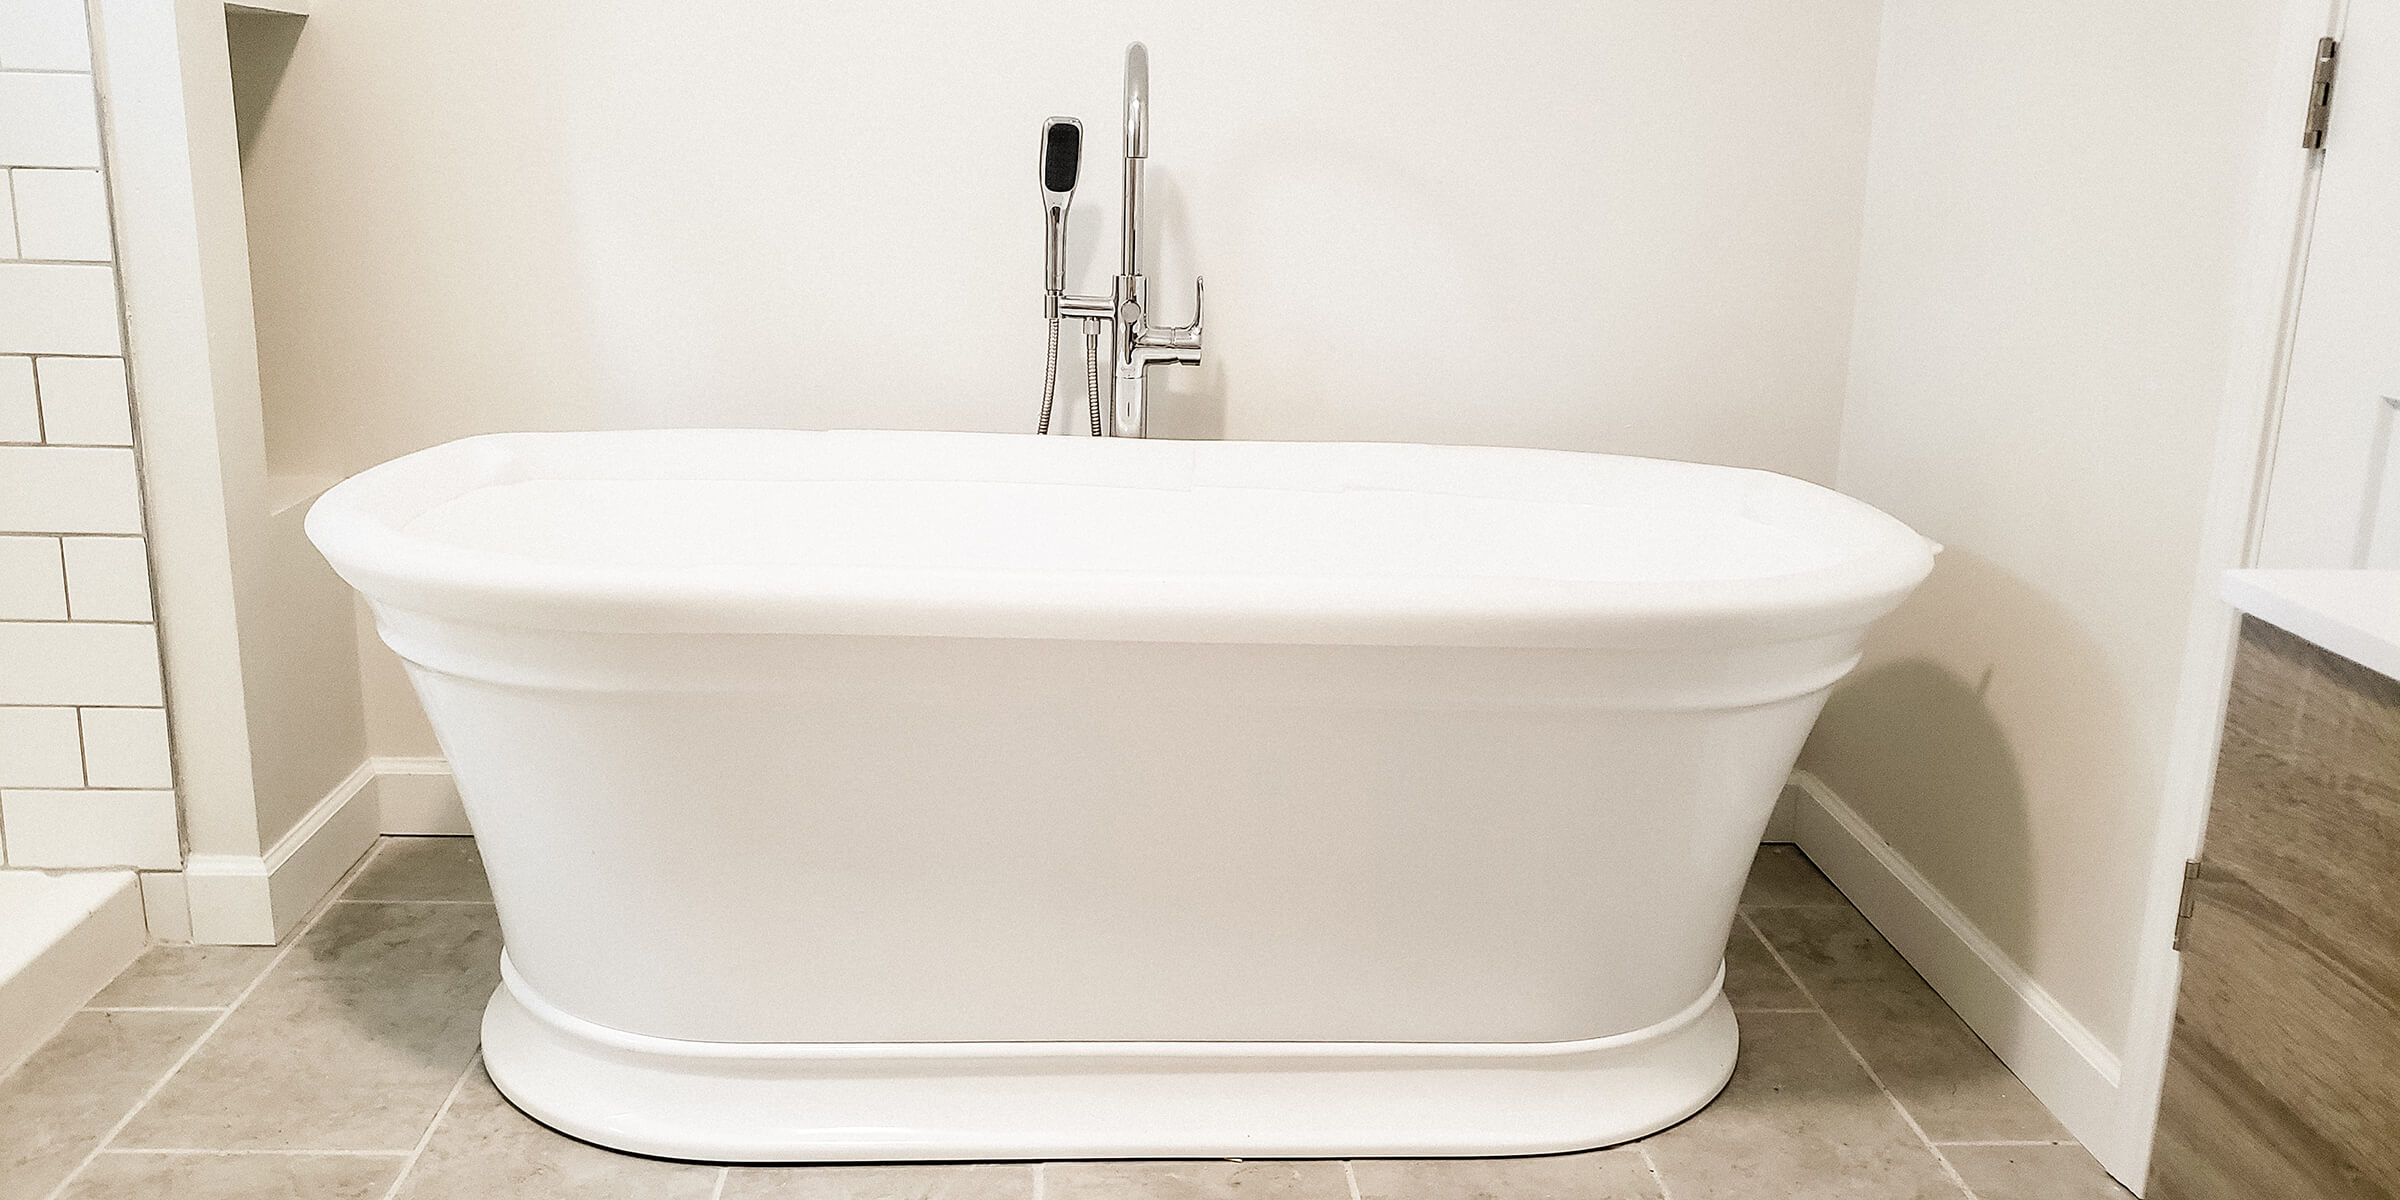 Soaker tub in Broad Ripple, Indiana Bathroom Remodel by Modern Touch Contracting in Indianapolis, Indiana